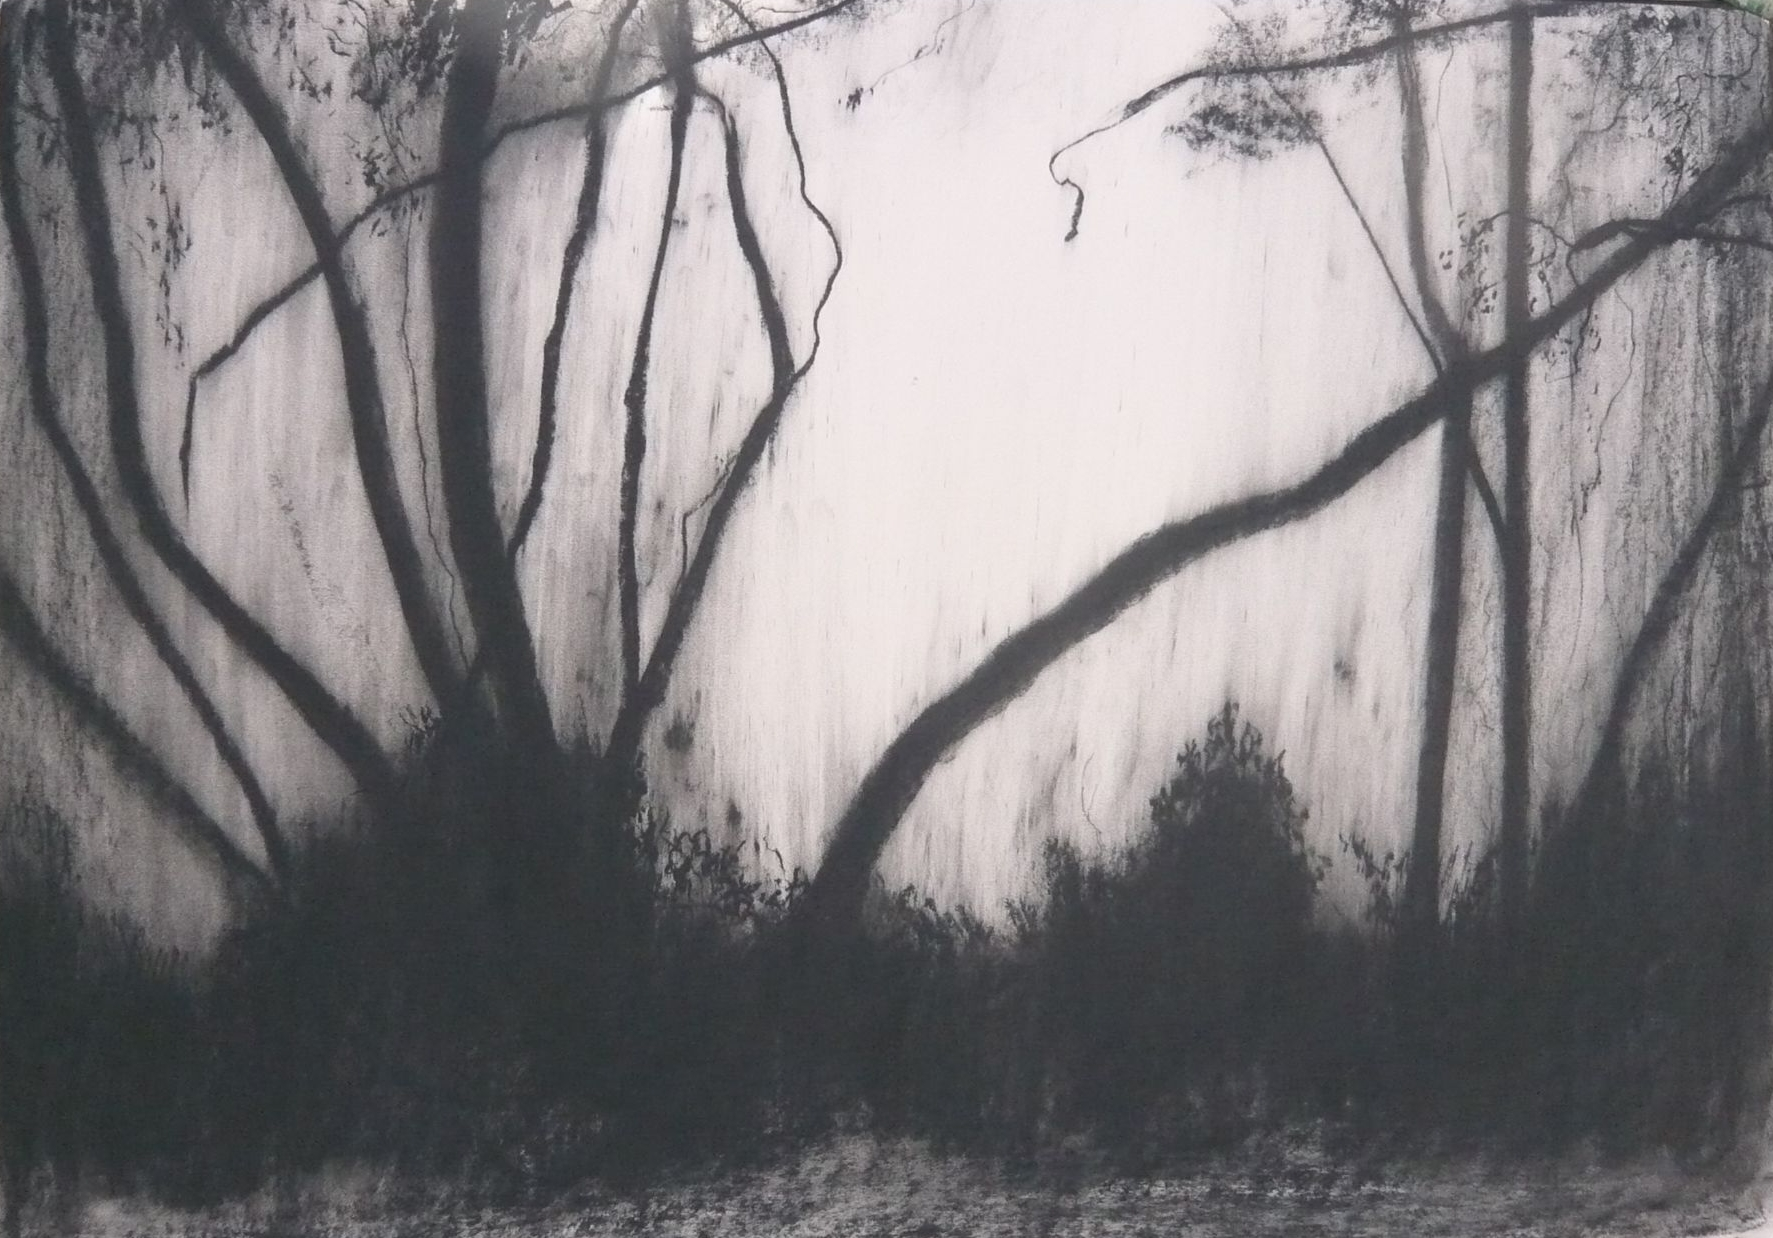 Maker Walk ENE #1 - Charcoal on Surrey cartridge paper (594 x 841 mm)